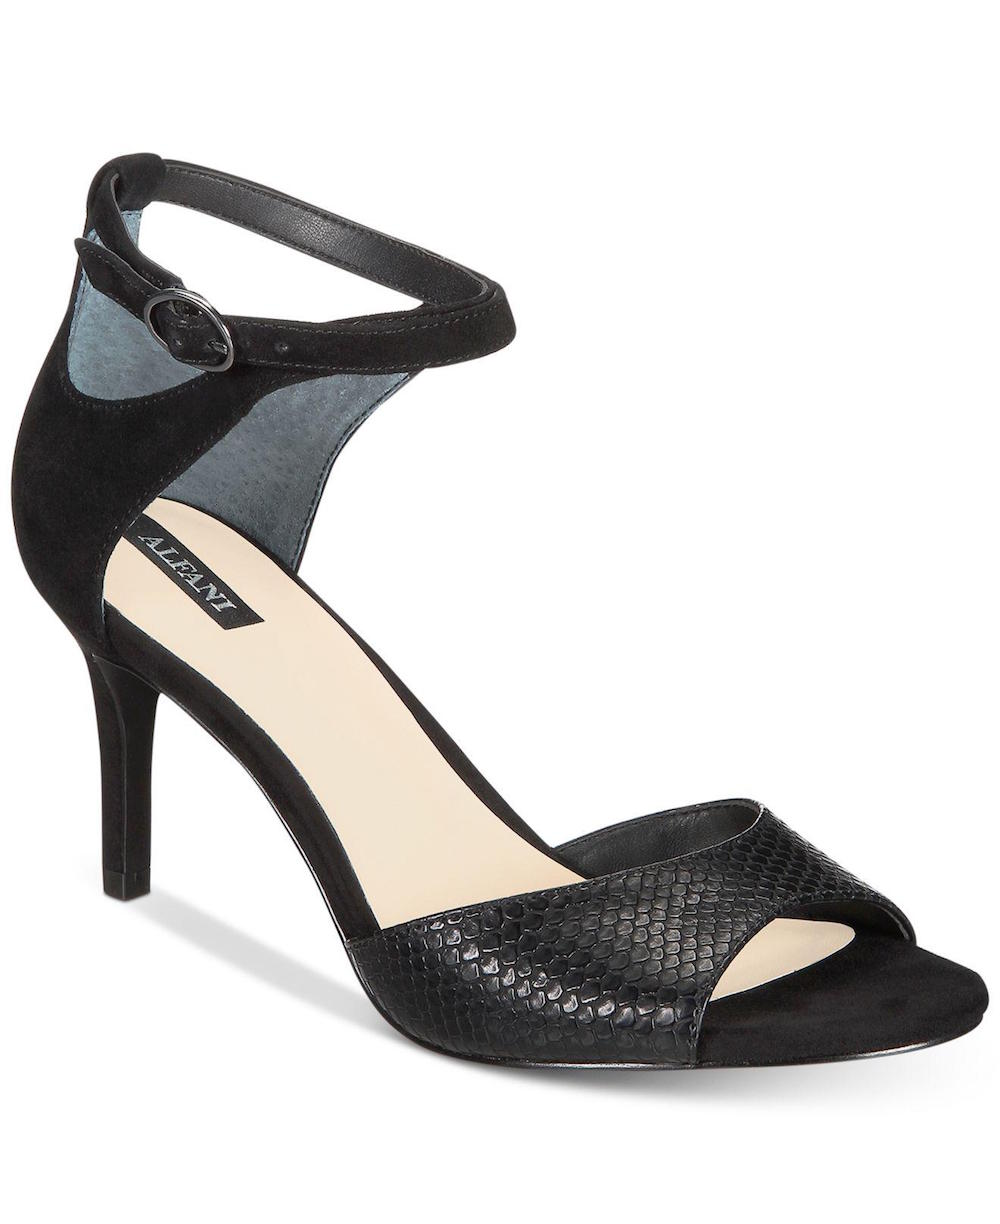 Alfani-Womens-Galeah-Open-Toe-Casual-Ankle-Strap-Sandals thumbnail 8